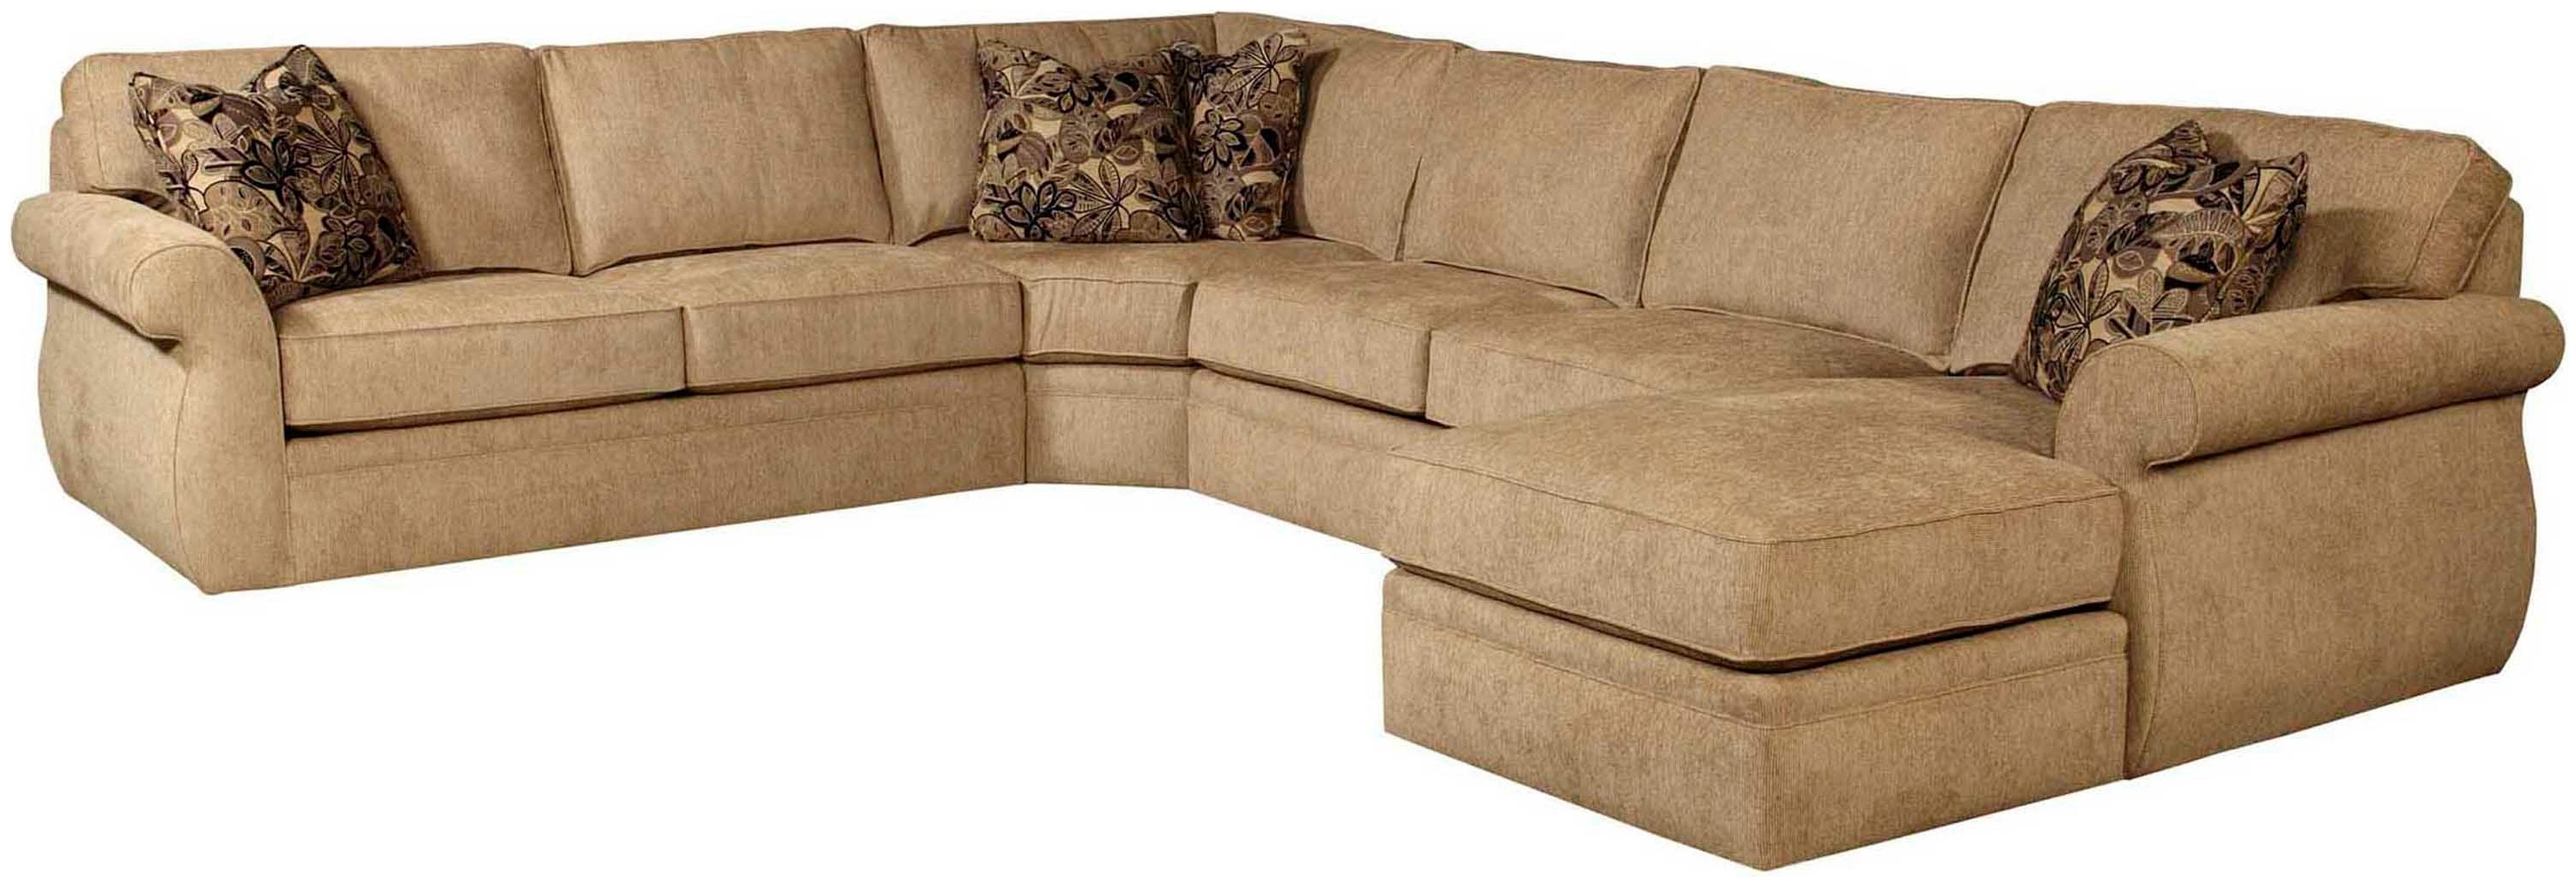 Well Known Furniture: Modern Chaise Sectional With Classic Comfortable Design For Long Couches With Chaise (View 15 of 15)